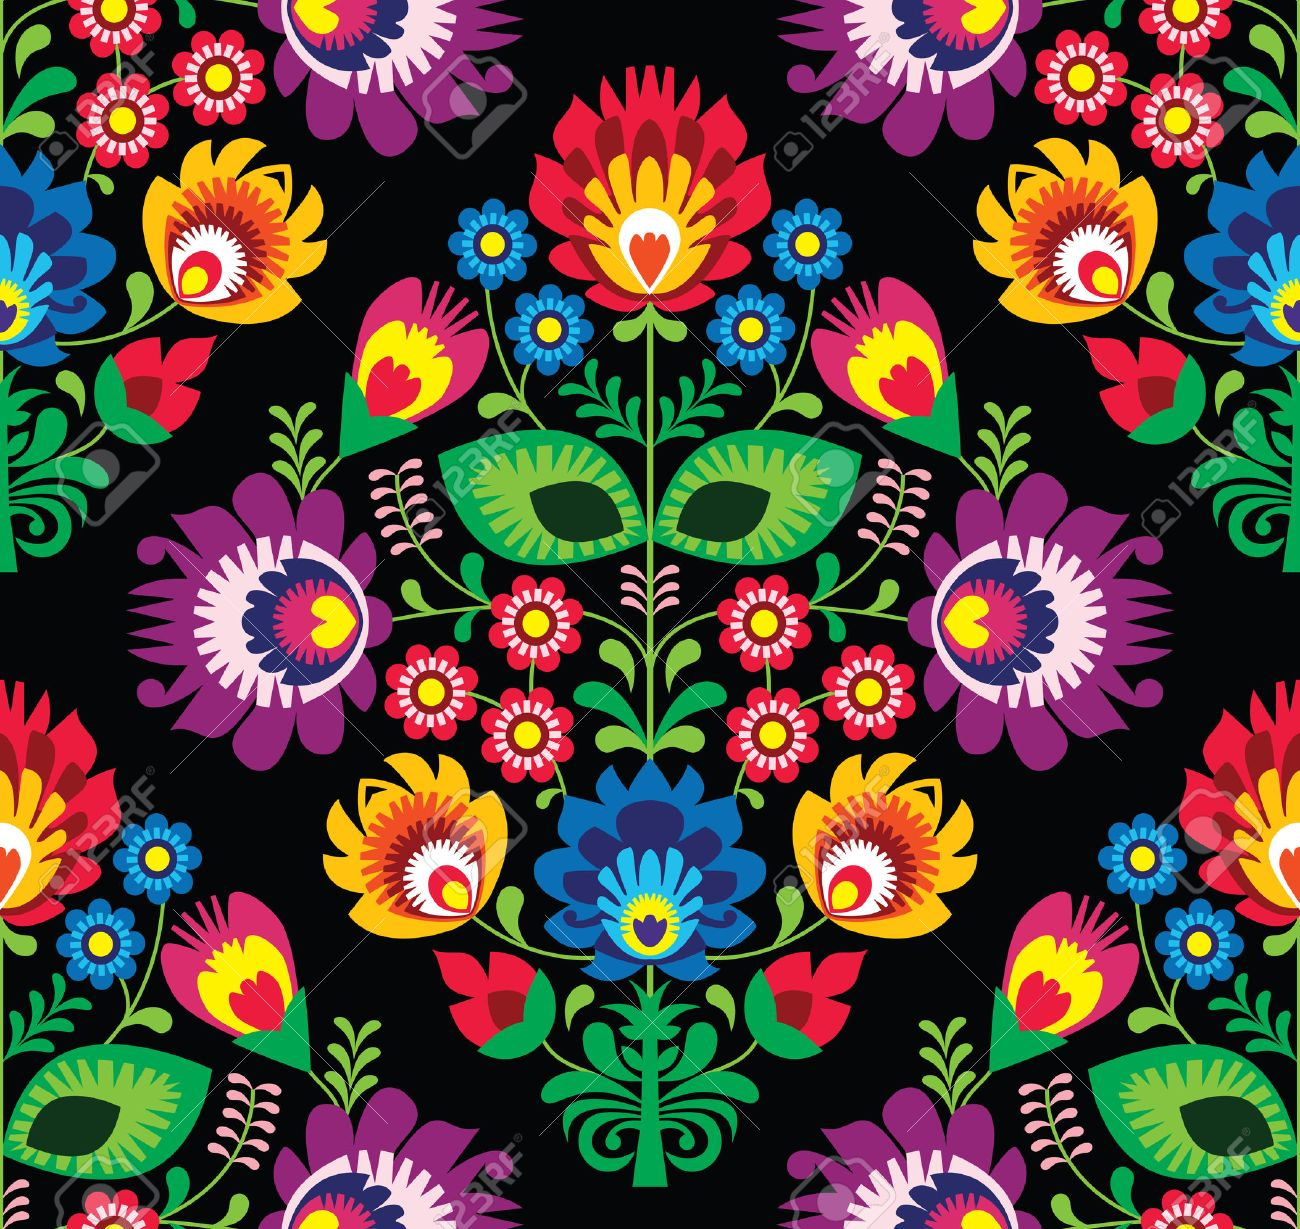 Seamless traditional floral Polish pattern on black - 27736670